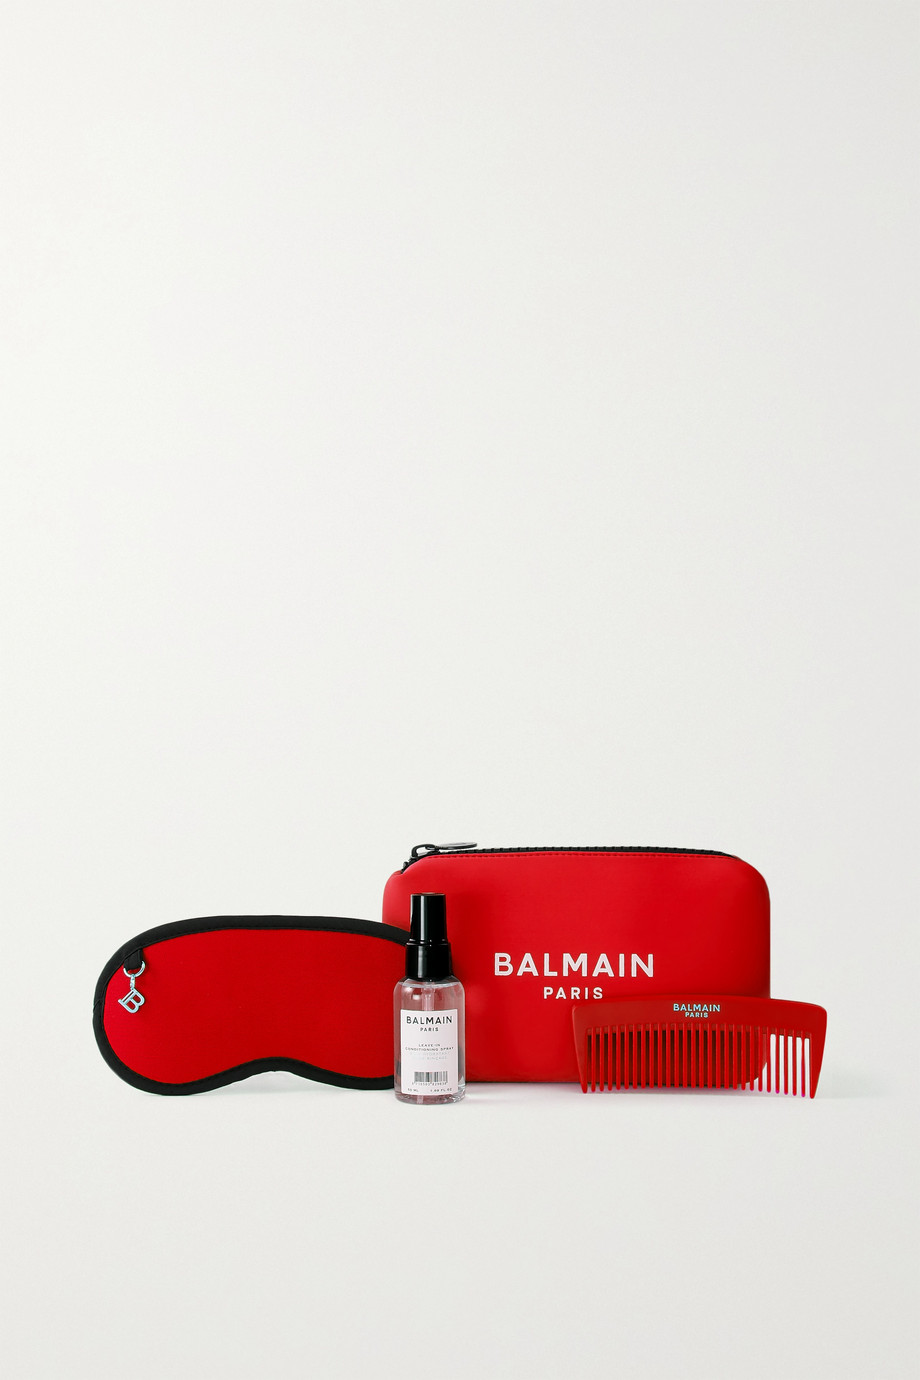 BALMAIN PARIS HAIR COUTURE Cosmetic Bag Set - Red